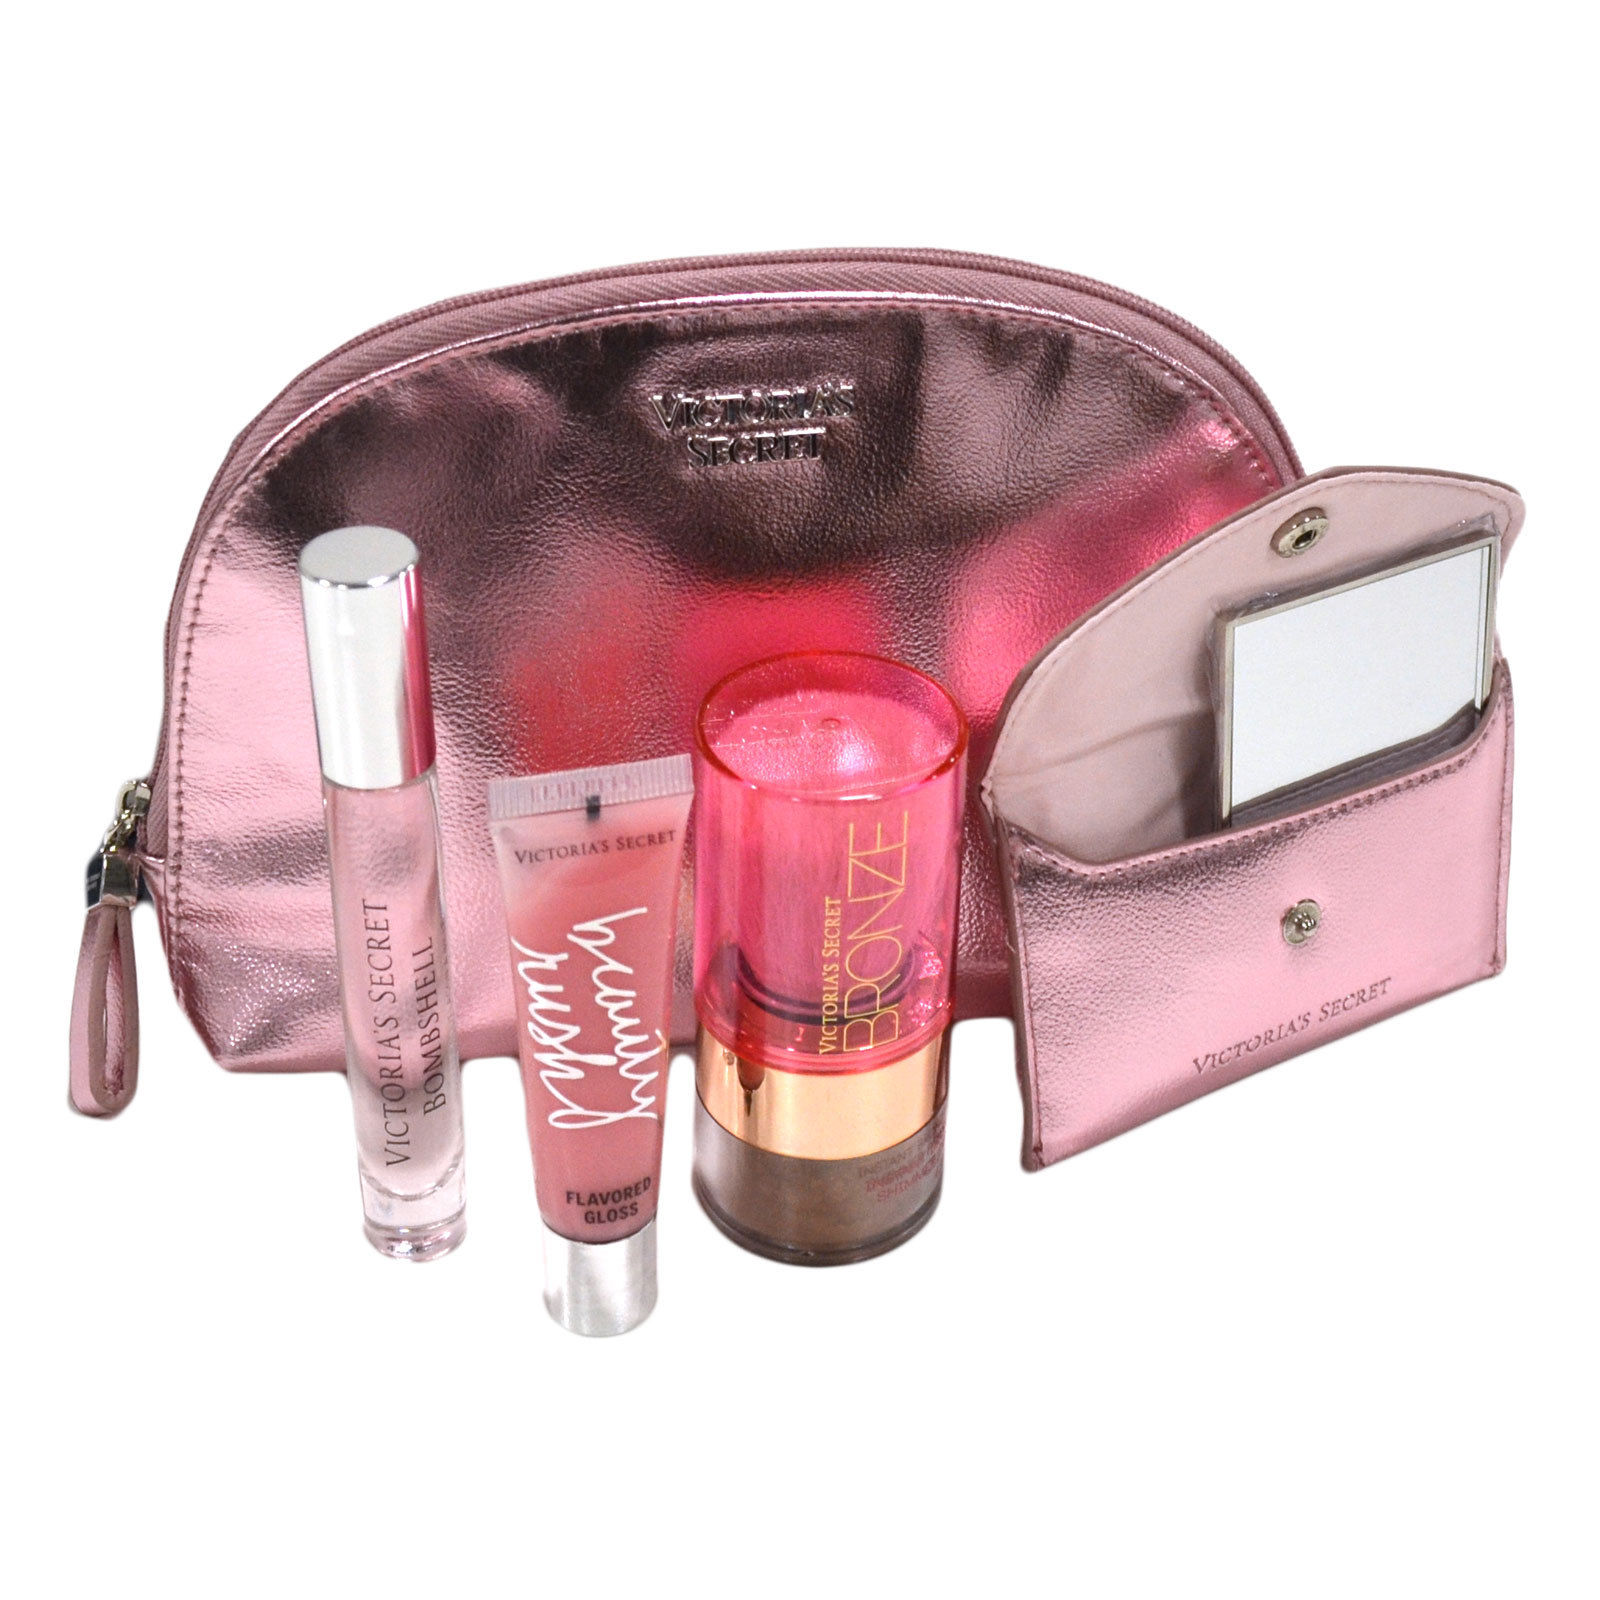 Victoria's Secret Hot Summer Nights Beauty Essentials Kit (Pink Bombshell)